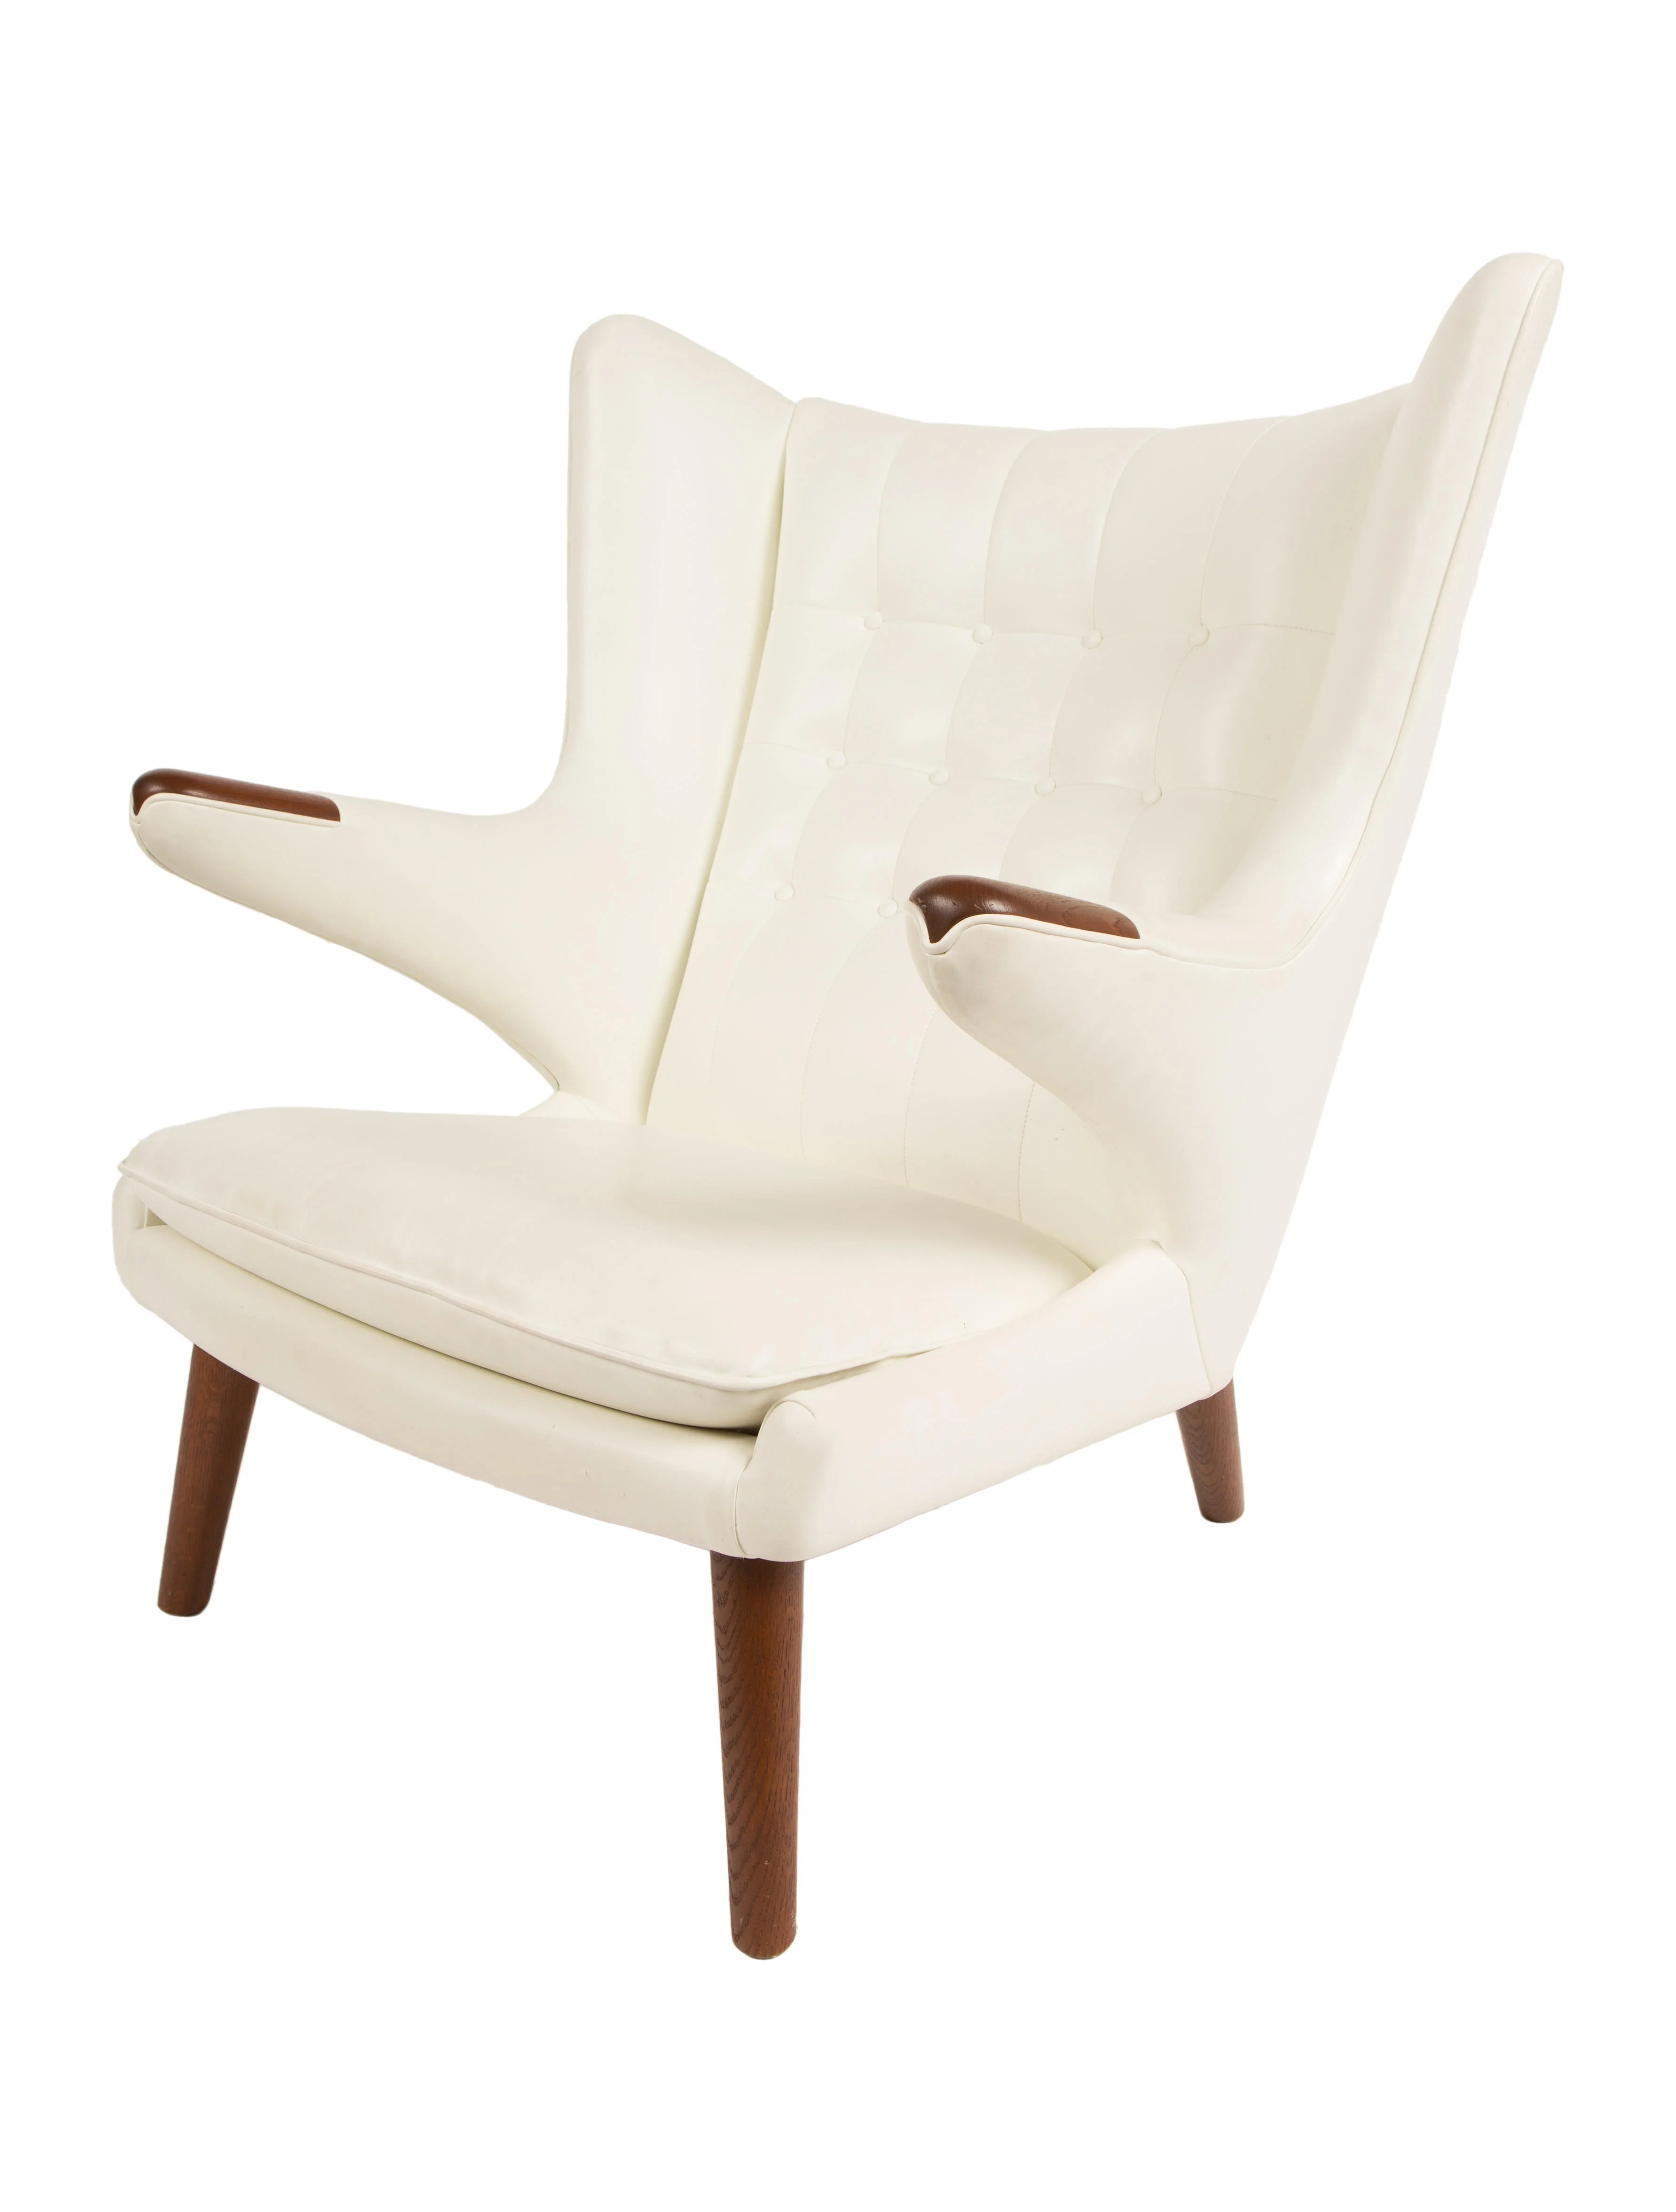 papa bear chair office at work review hans wegner furniture hwg20001 the